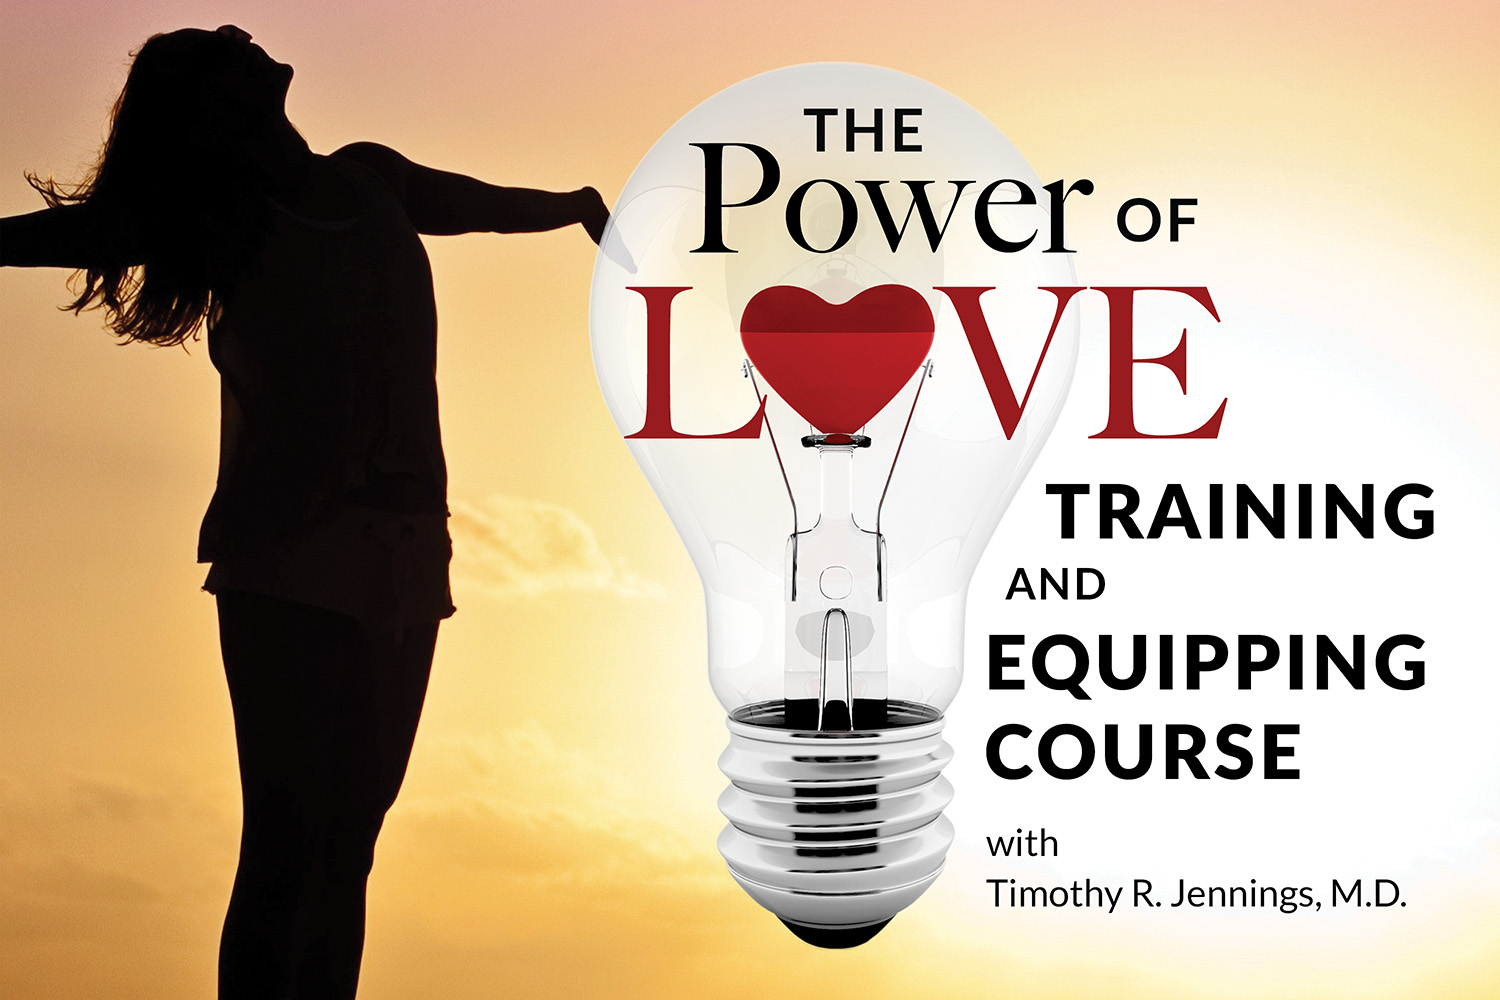 The Power of Love Training and Equipping Course